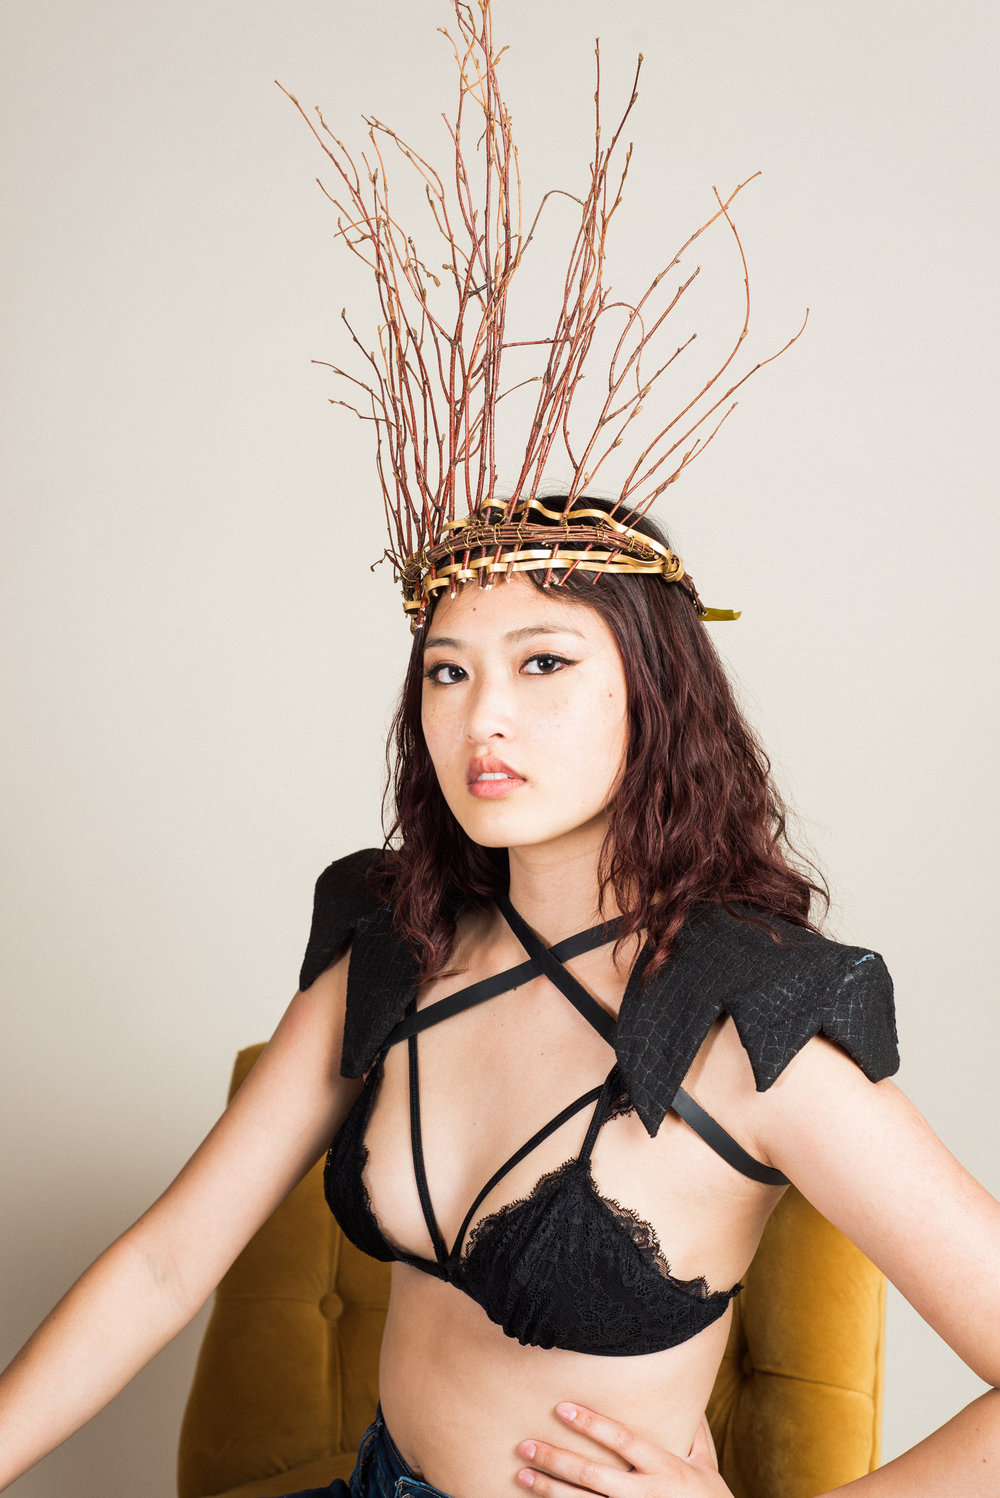 Bralette (S), Twig Crown, and Shoulder Pads | Modeled by Makenzy